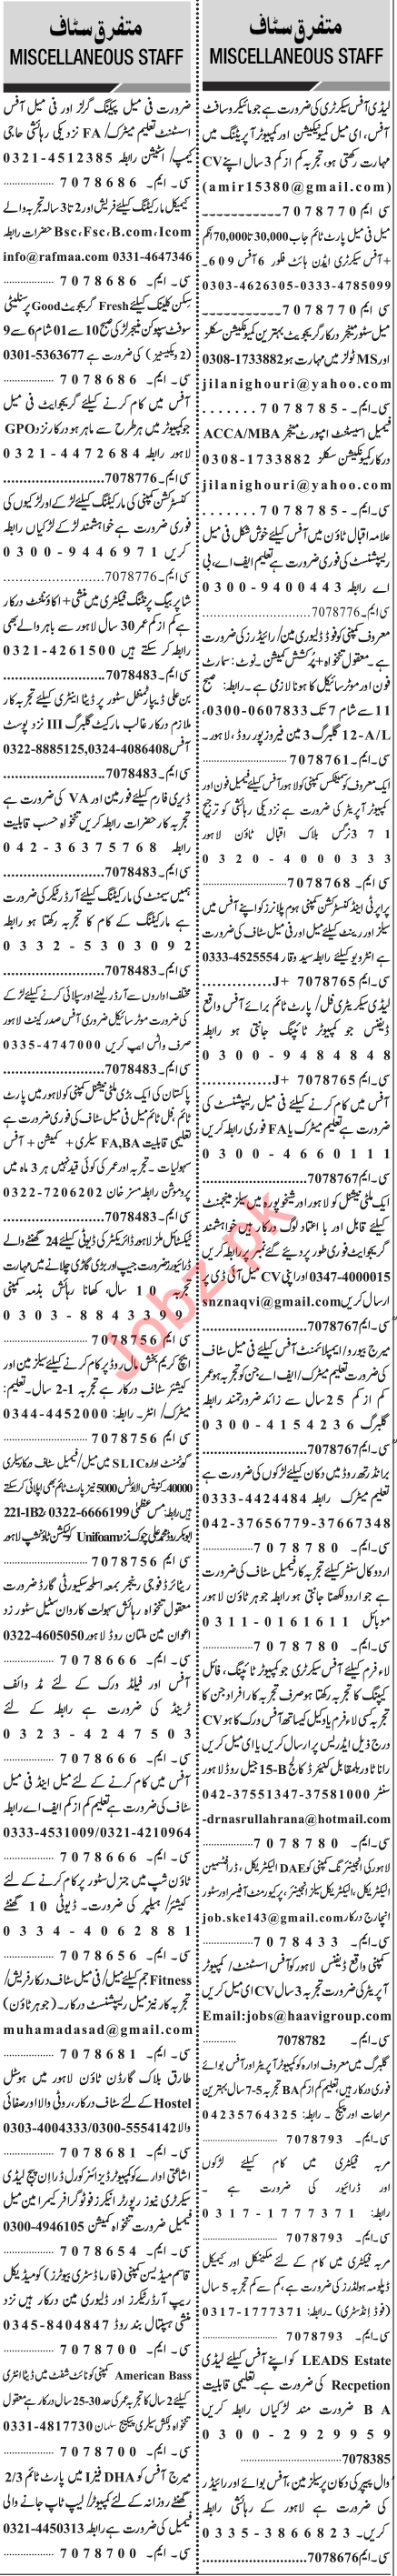 Jang Sunday Classified Ads 26 Jan 2020 for Miscellaneous